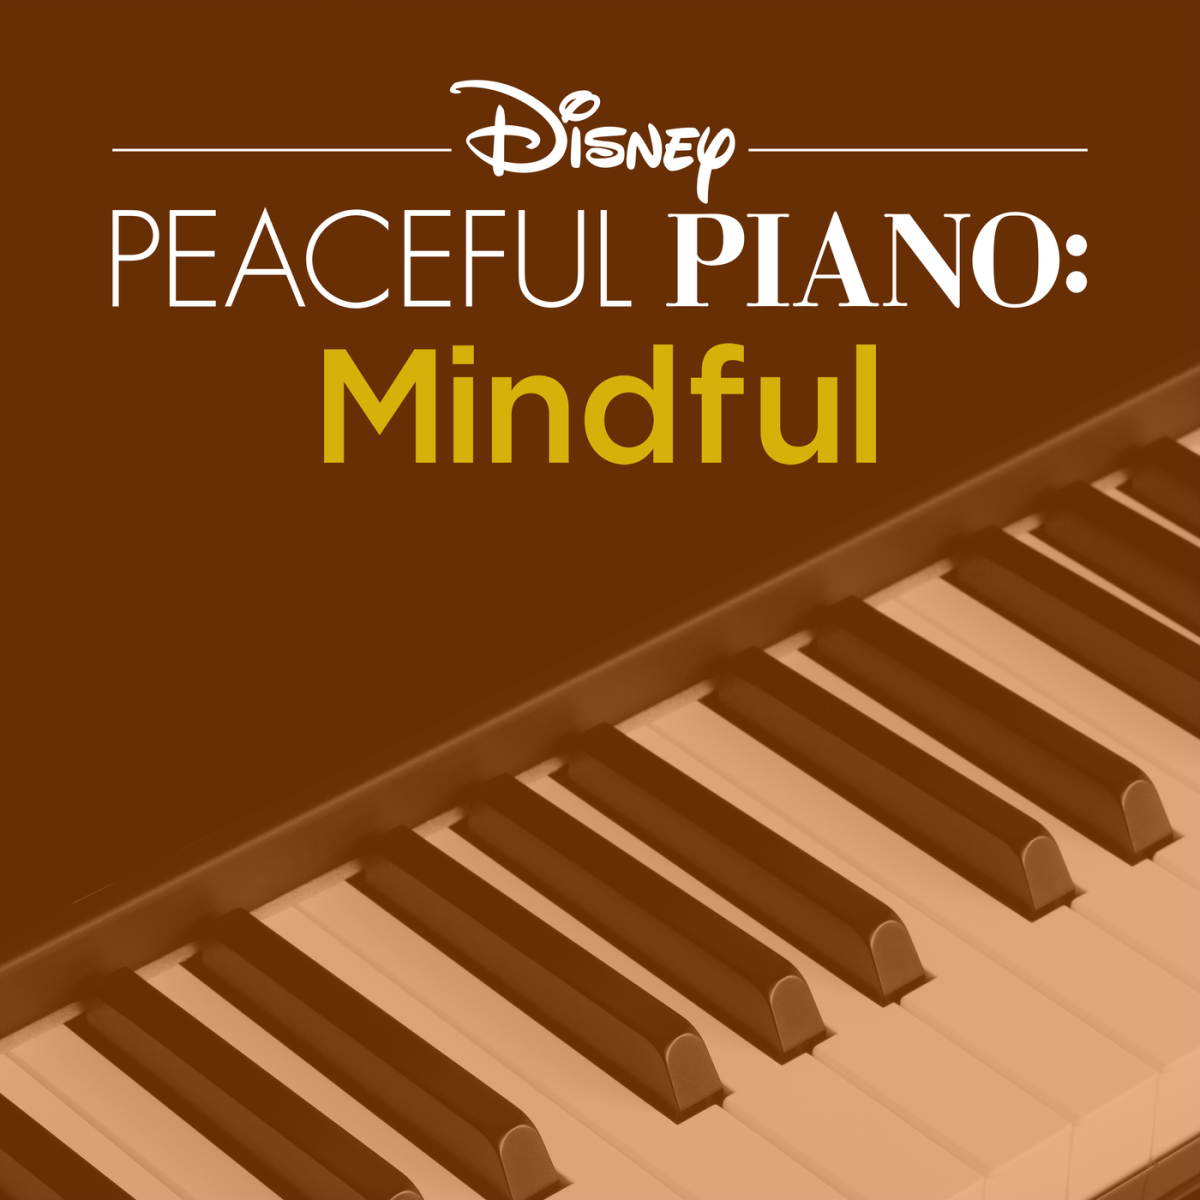 Disney Peaceful Piano: Mindful